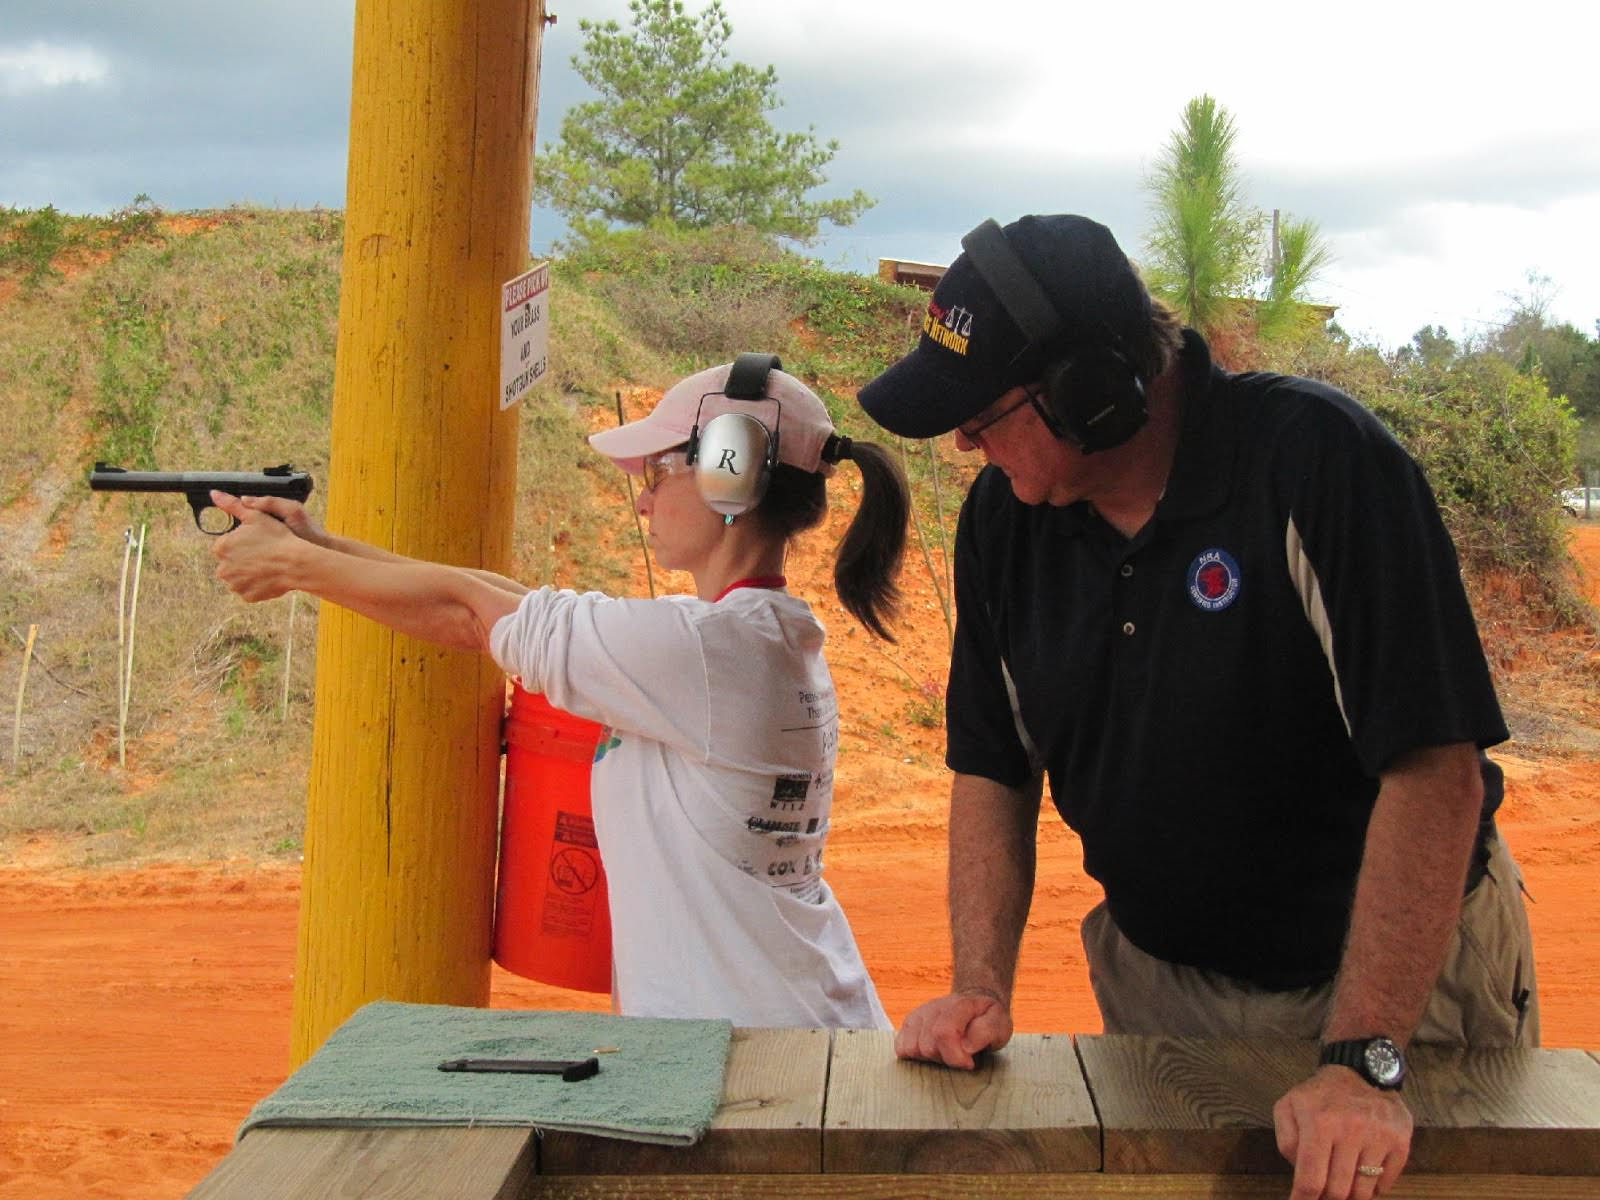 Select Proper Hearing Protection For Shooting To Avoid